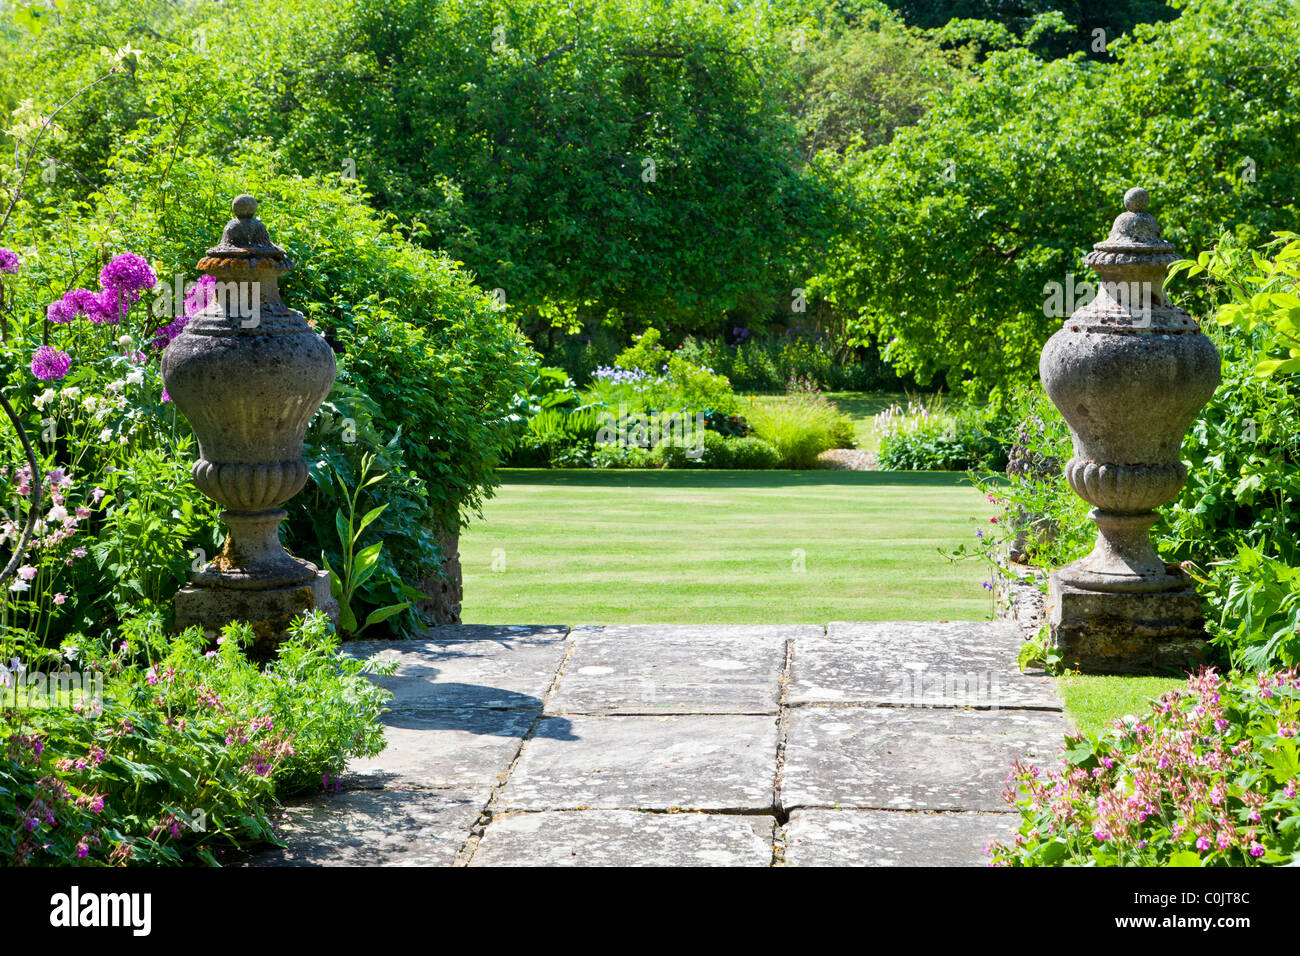 View From Paved Garden Terrace With Stone Finials Onto The Lawn